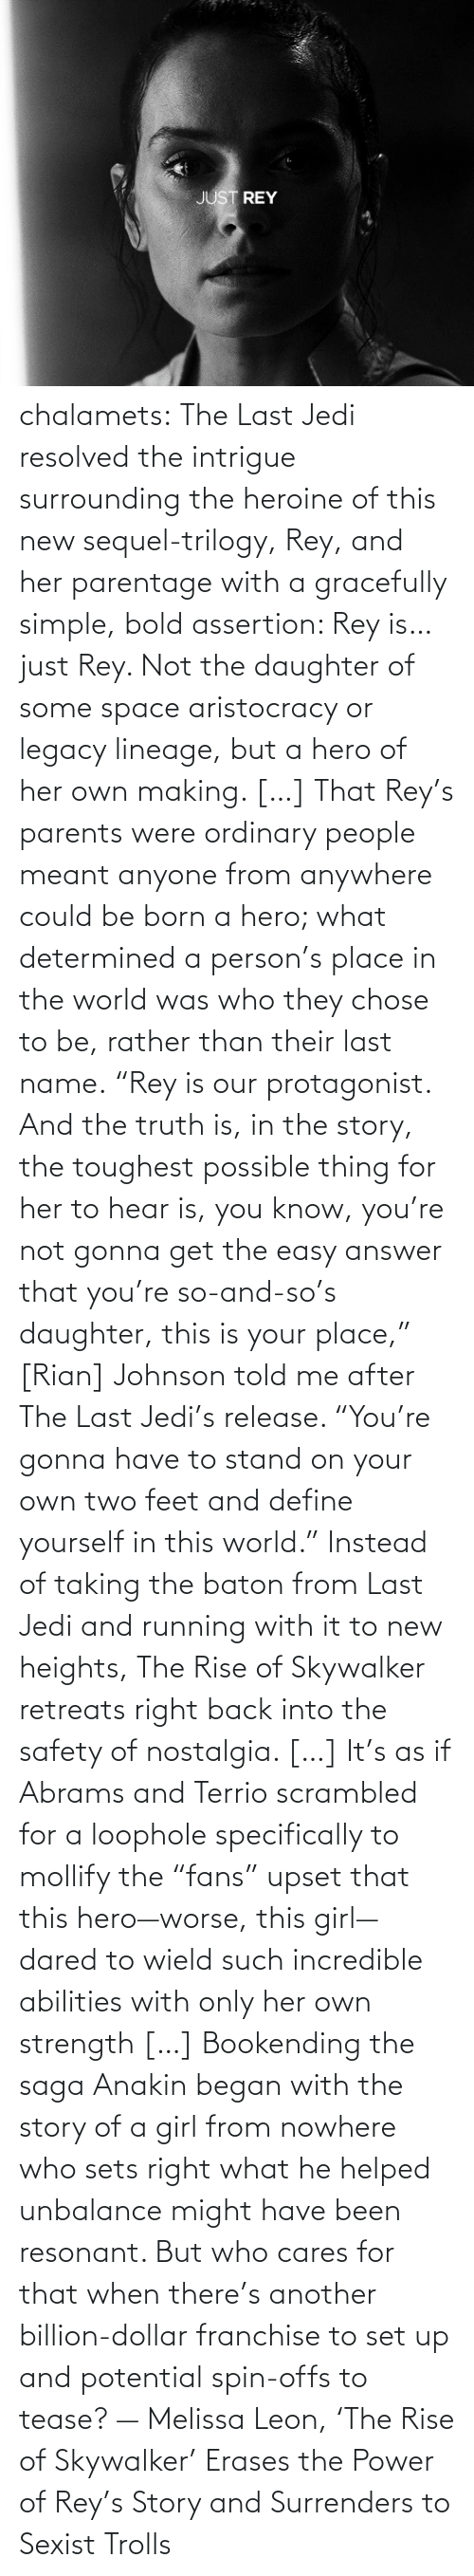 "a hero: chalamets:  The Last Jedi resolved the intrigue surrounding the heroine of this new sequel-trilogy, Rey, and her parentage with a gracefully simple, bold assertion: Rey is… just Rey. Not the daughter of some space aristocracy or legacy lineage, but a hero of her own making. […] That Rey's parents were ordinary people meant anyone from anywhere could be born a hero; what determined a person's place in the world was who they chose to be, rather than their last name. ""Rey is our protagonist. And the truth is, in the story, the toughest possible thing for her to hear is, you know, you're not gonna get the easy answer that you're so-and-so's daughter, this is your place,"" [Rian] Johnson told me after The Last Jedi's release. ""You're gonna have to stand on your own two feet and define yourself in this world."" Instead of taking the baton from Last Jedi and running with it to new heights, The Rise of Skywalker retreats right back into the safety of nostalgia. […] It's as if Abrams and Terrio scrambled for a loophole specifically to mollify the ""fans"" upset that this hero—worse, this girl—dared to wield such incredible abilities with only her own strength […] Bookending the saga Anakin began with the story of a girl from nowhere who sets right what he helped unbalance might have been resonant. But who cares for that when there's another billion-dollar franchise to set up and potential spin-offs to tease? — Melissa Leon, 'The Rise of Skywalker' Erases the Power of Rey's Story and Surrenders to Sexist Trolls"